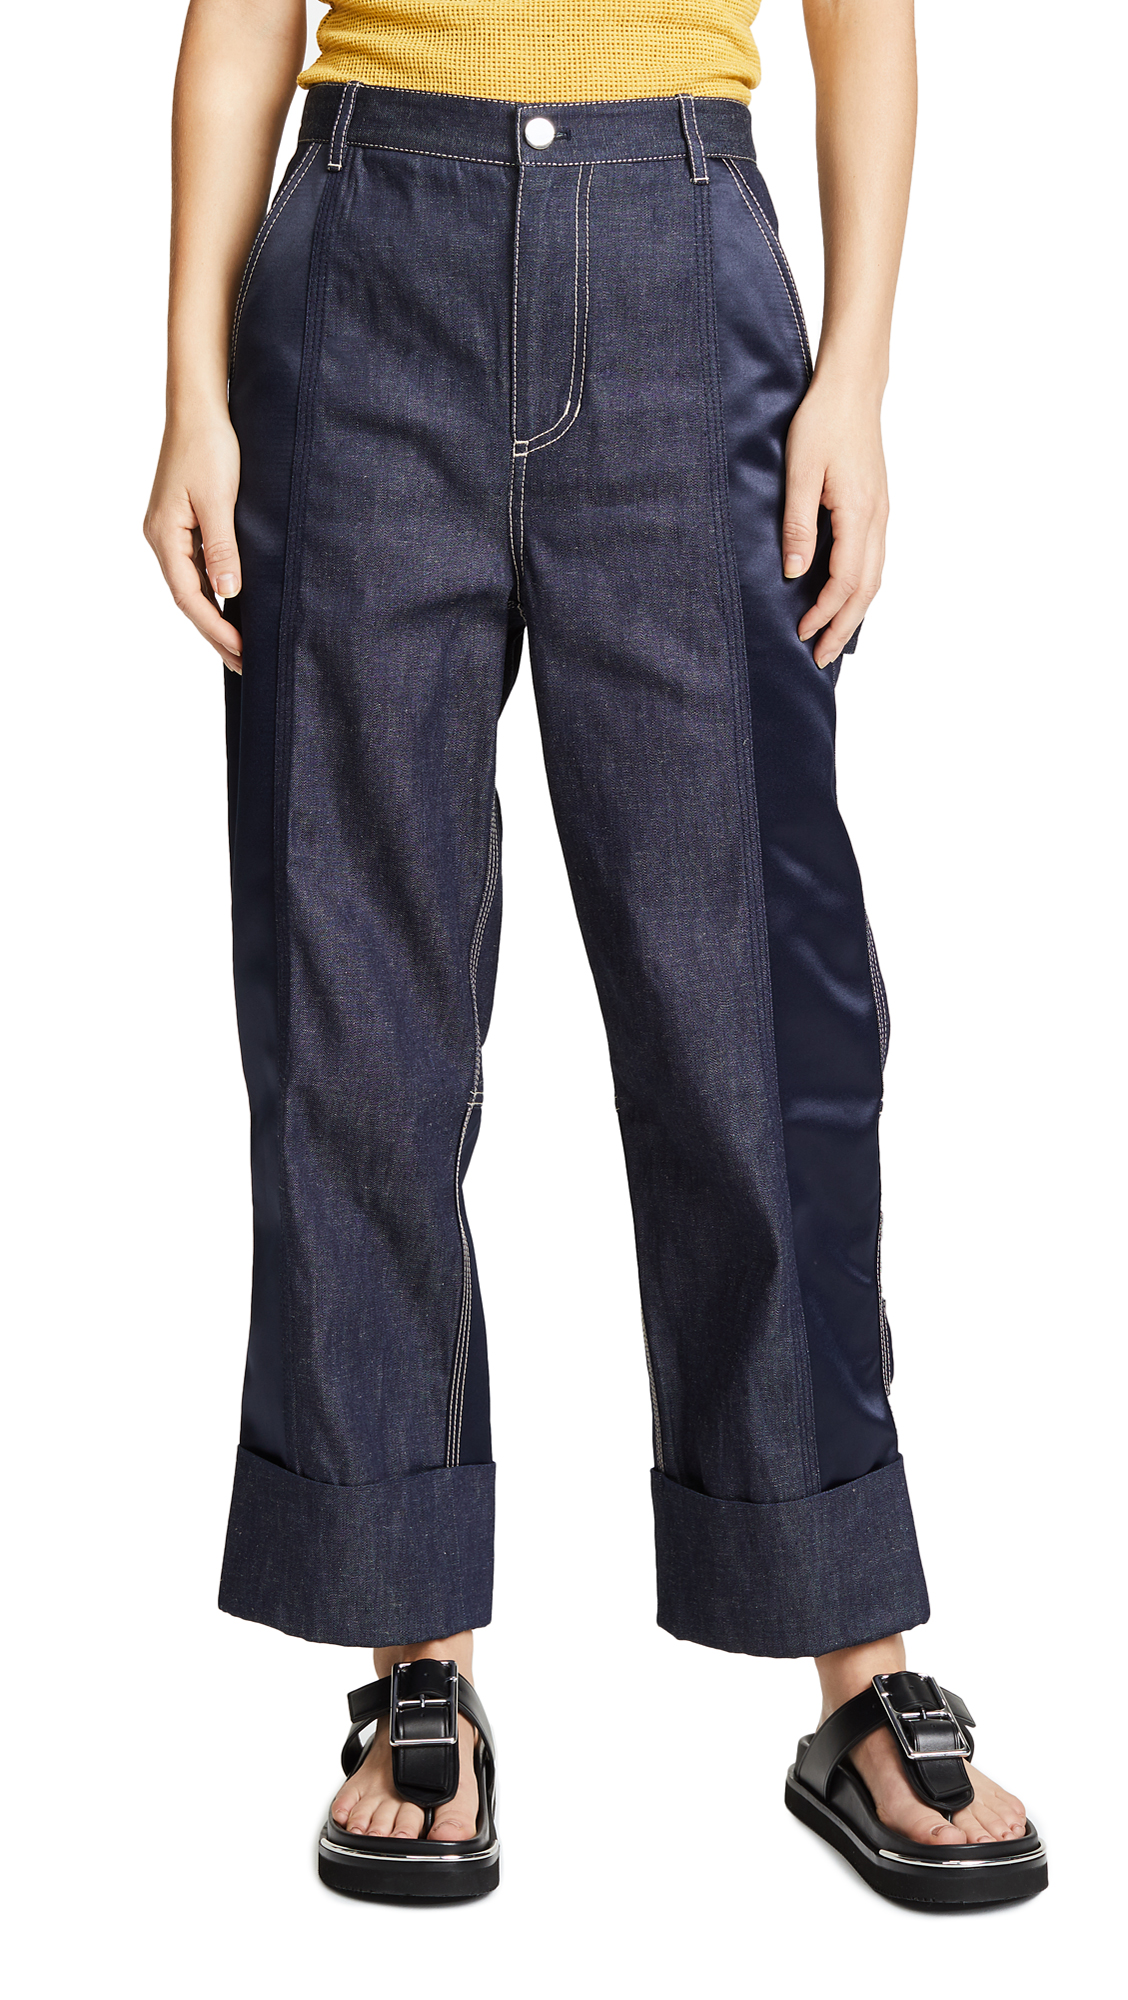 3.1 Phillip Lim Denim Cargo Pants